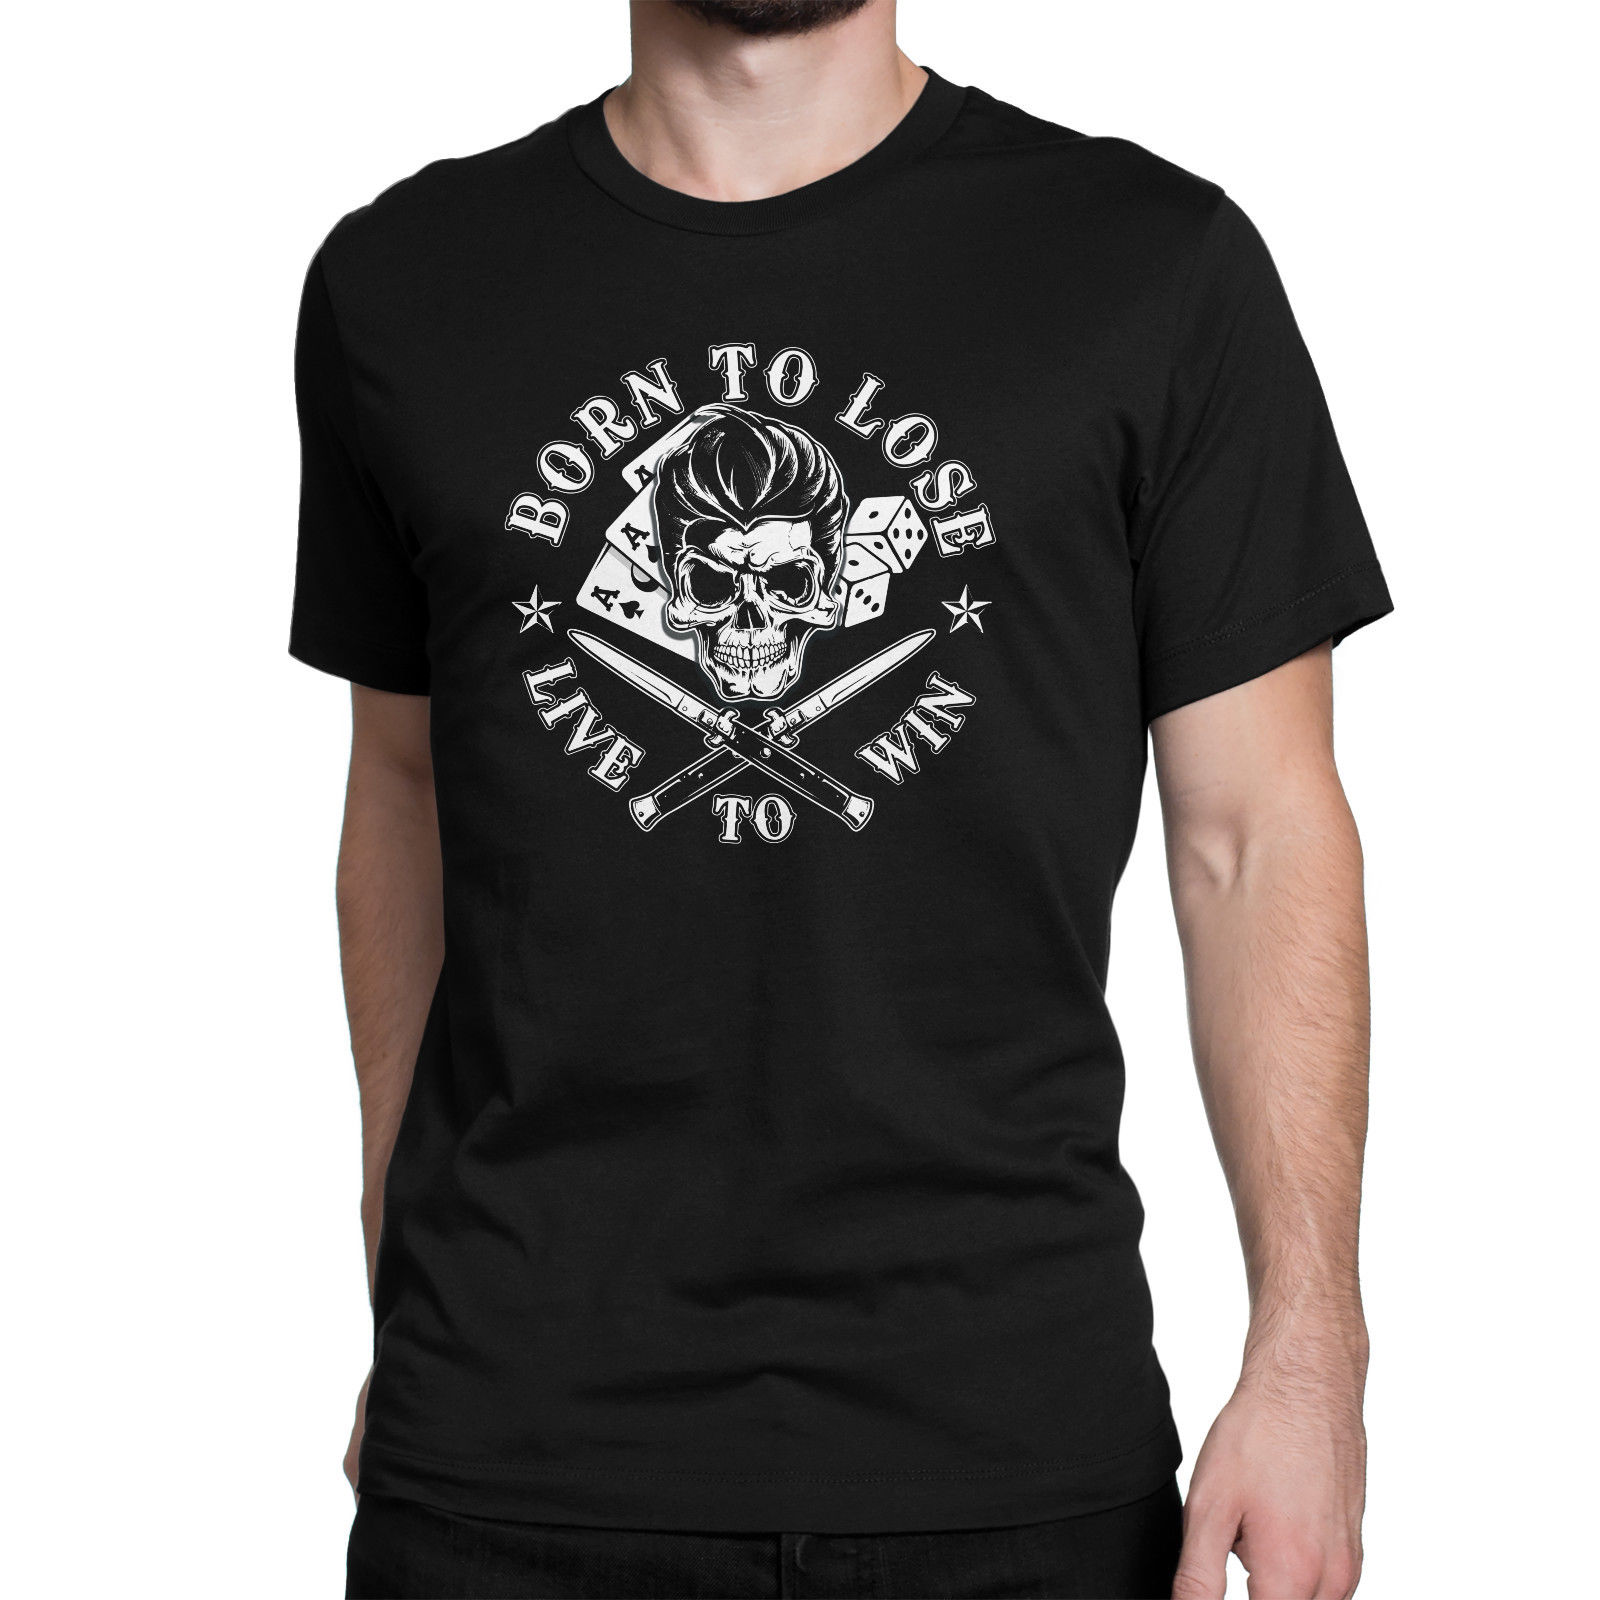 2018 Hot sale Fashion New Rockabilly Black Men Printed T-shirt Born To Lose Live To Win Tee shirt